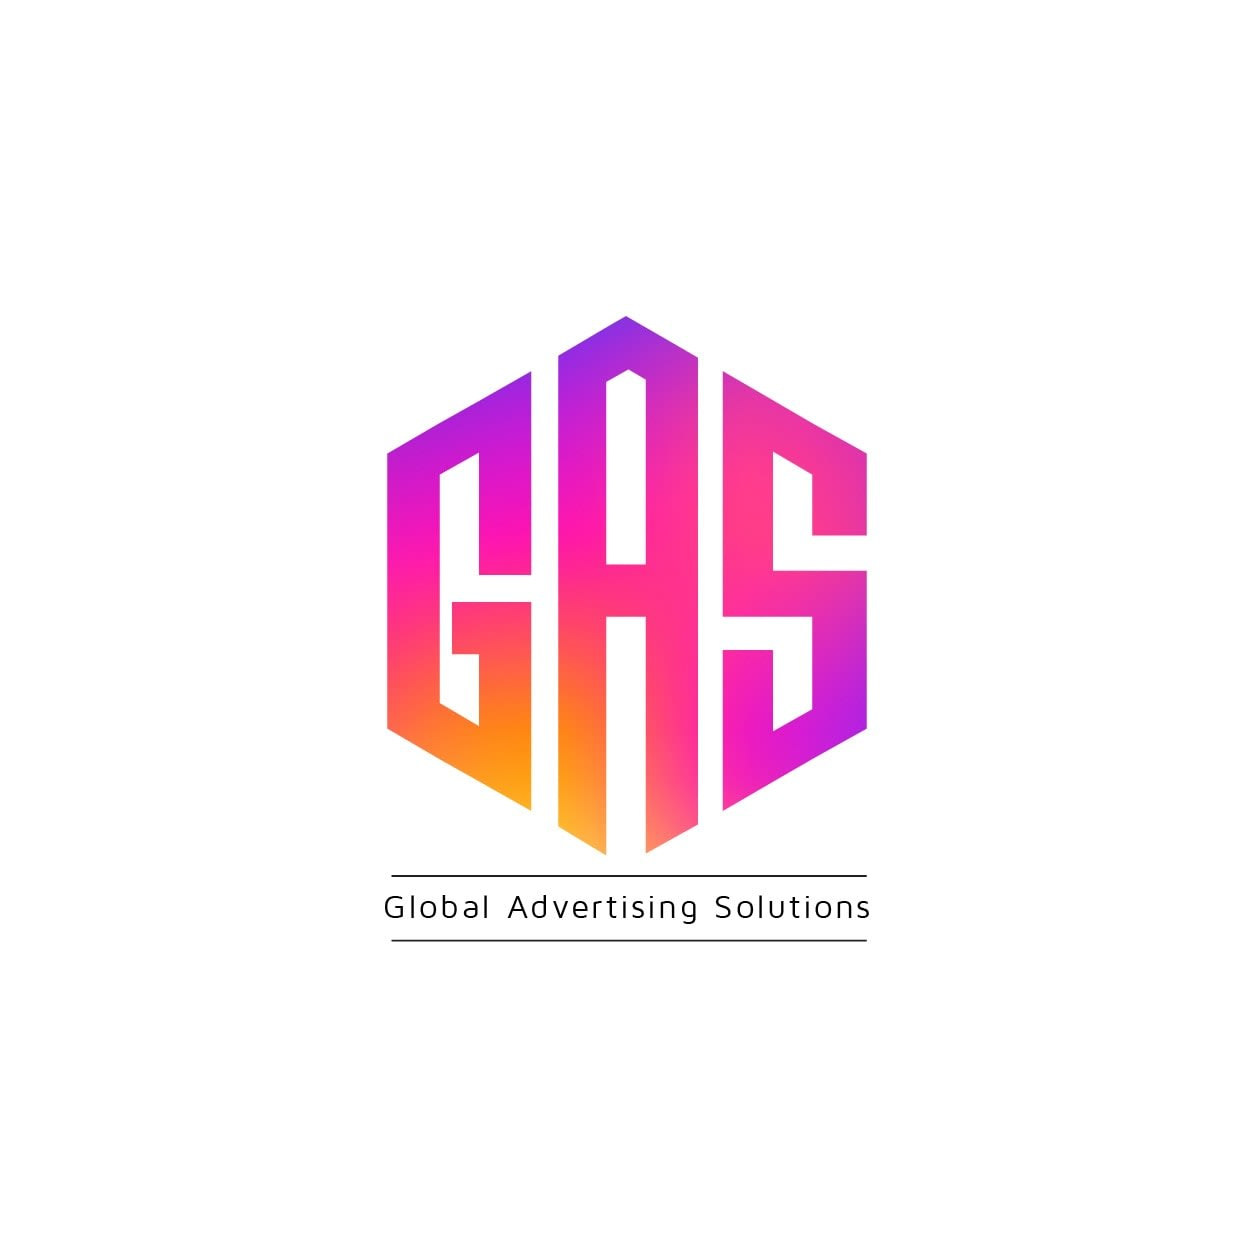 Global Advertising Solutions